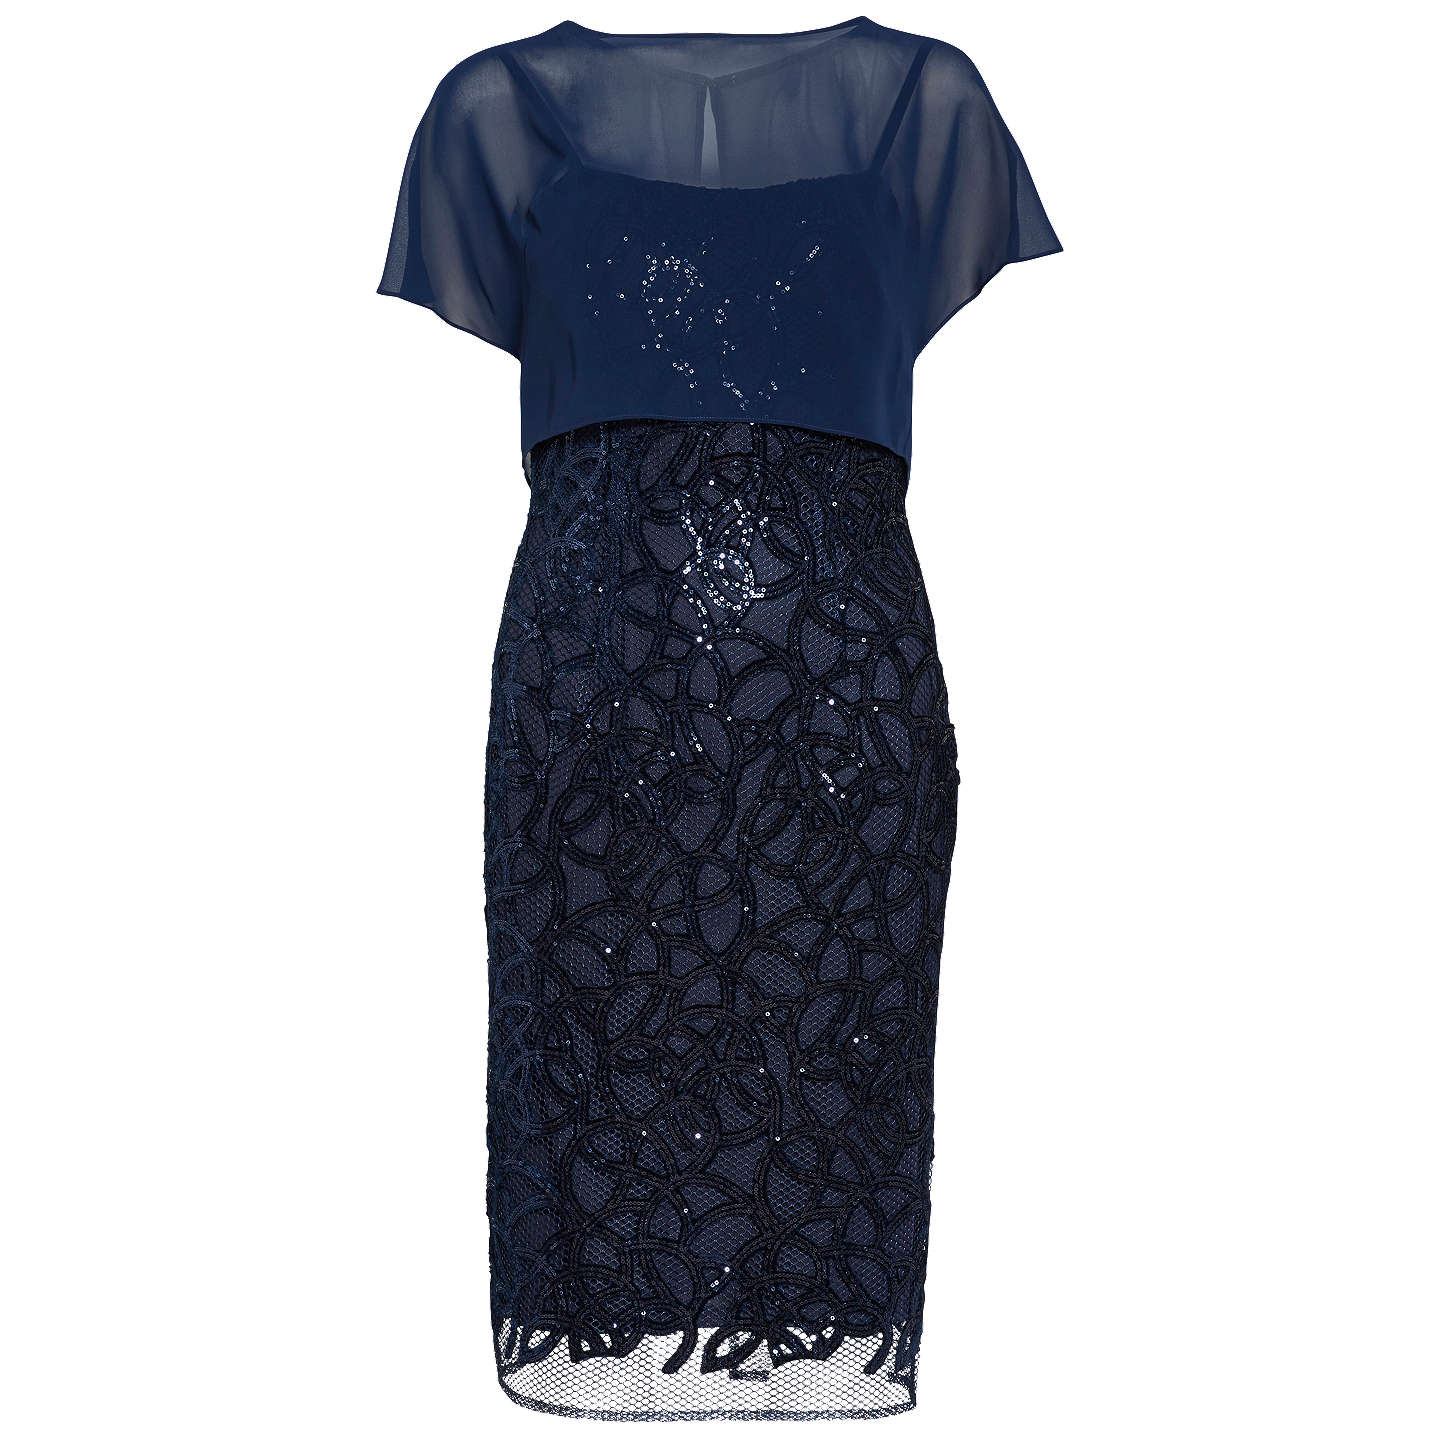 BuyGina Bacconi Sequin Dress And Chiffon Top, Spring Navy, 8 Online at johnlewis.com